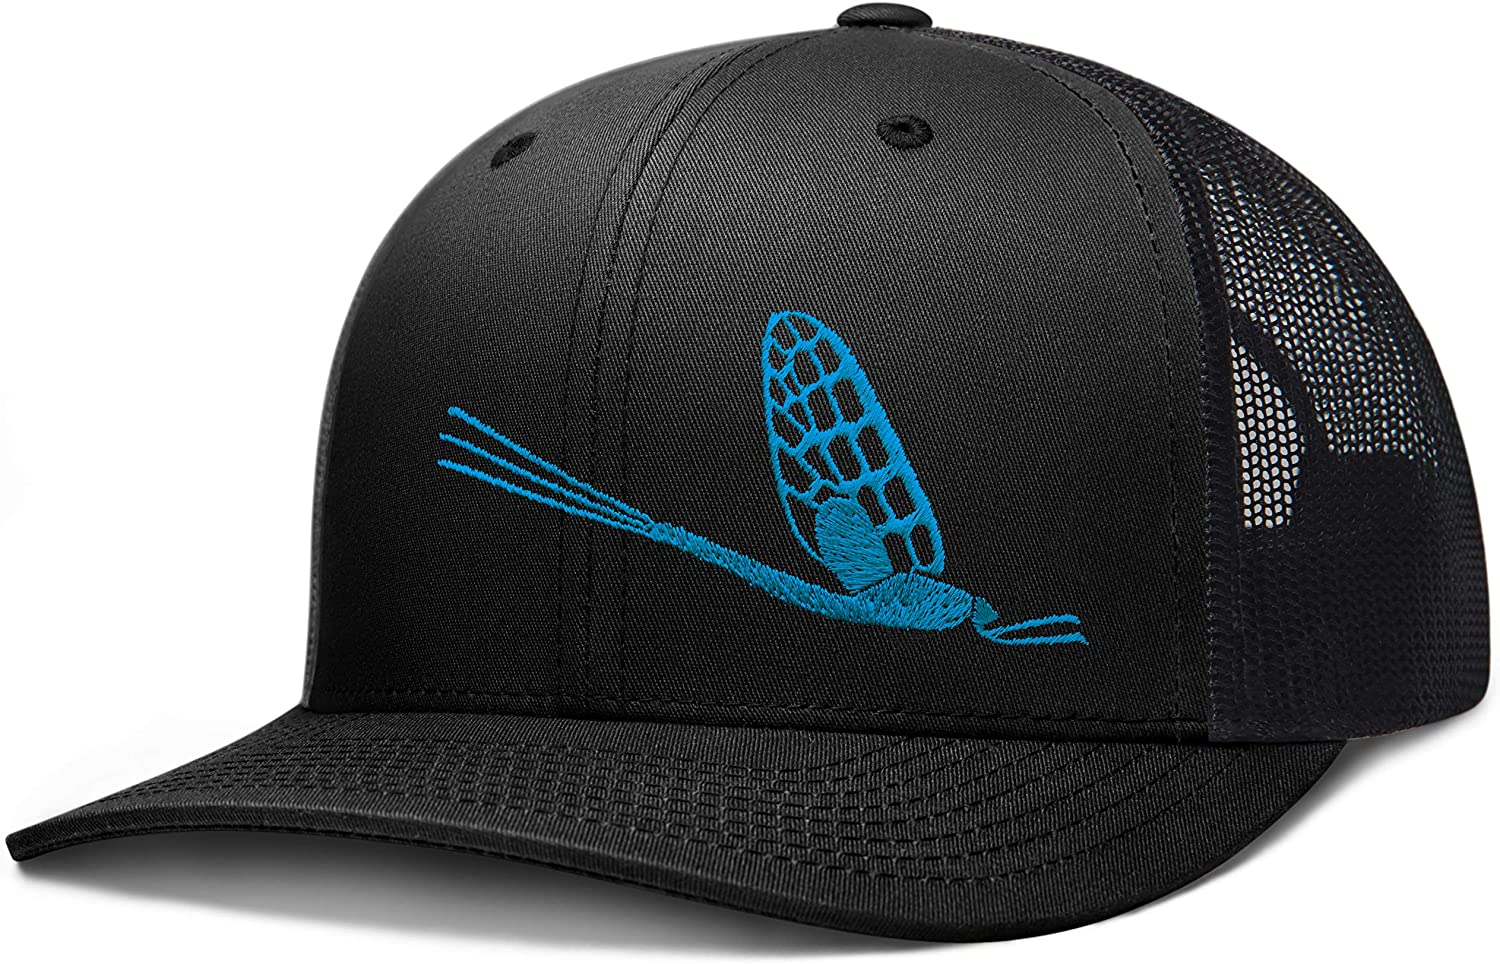 LARIX GEAR Fly Fishing Trucker Hat, The Mayfly